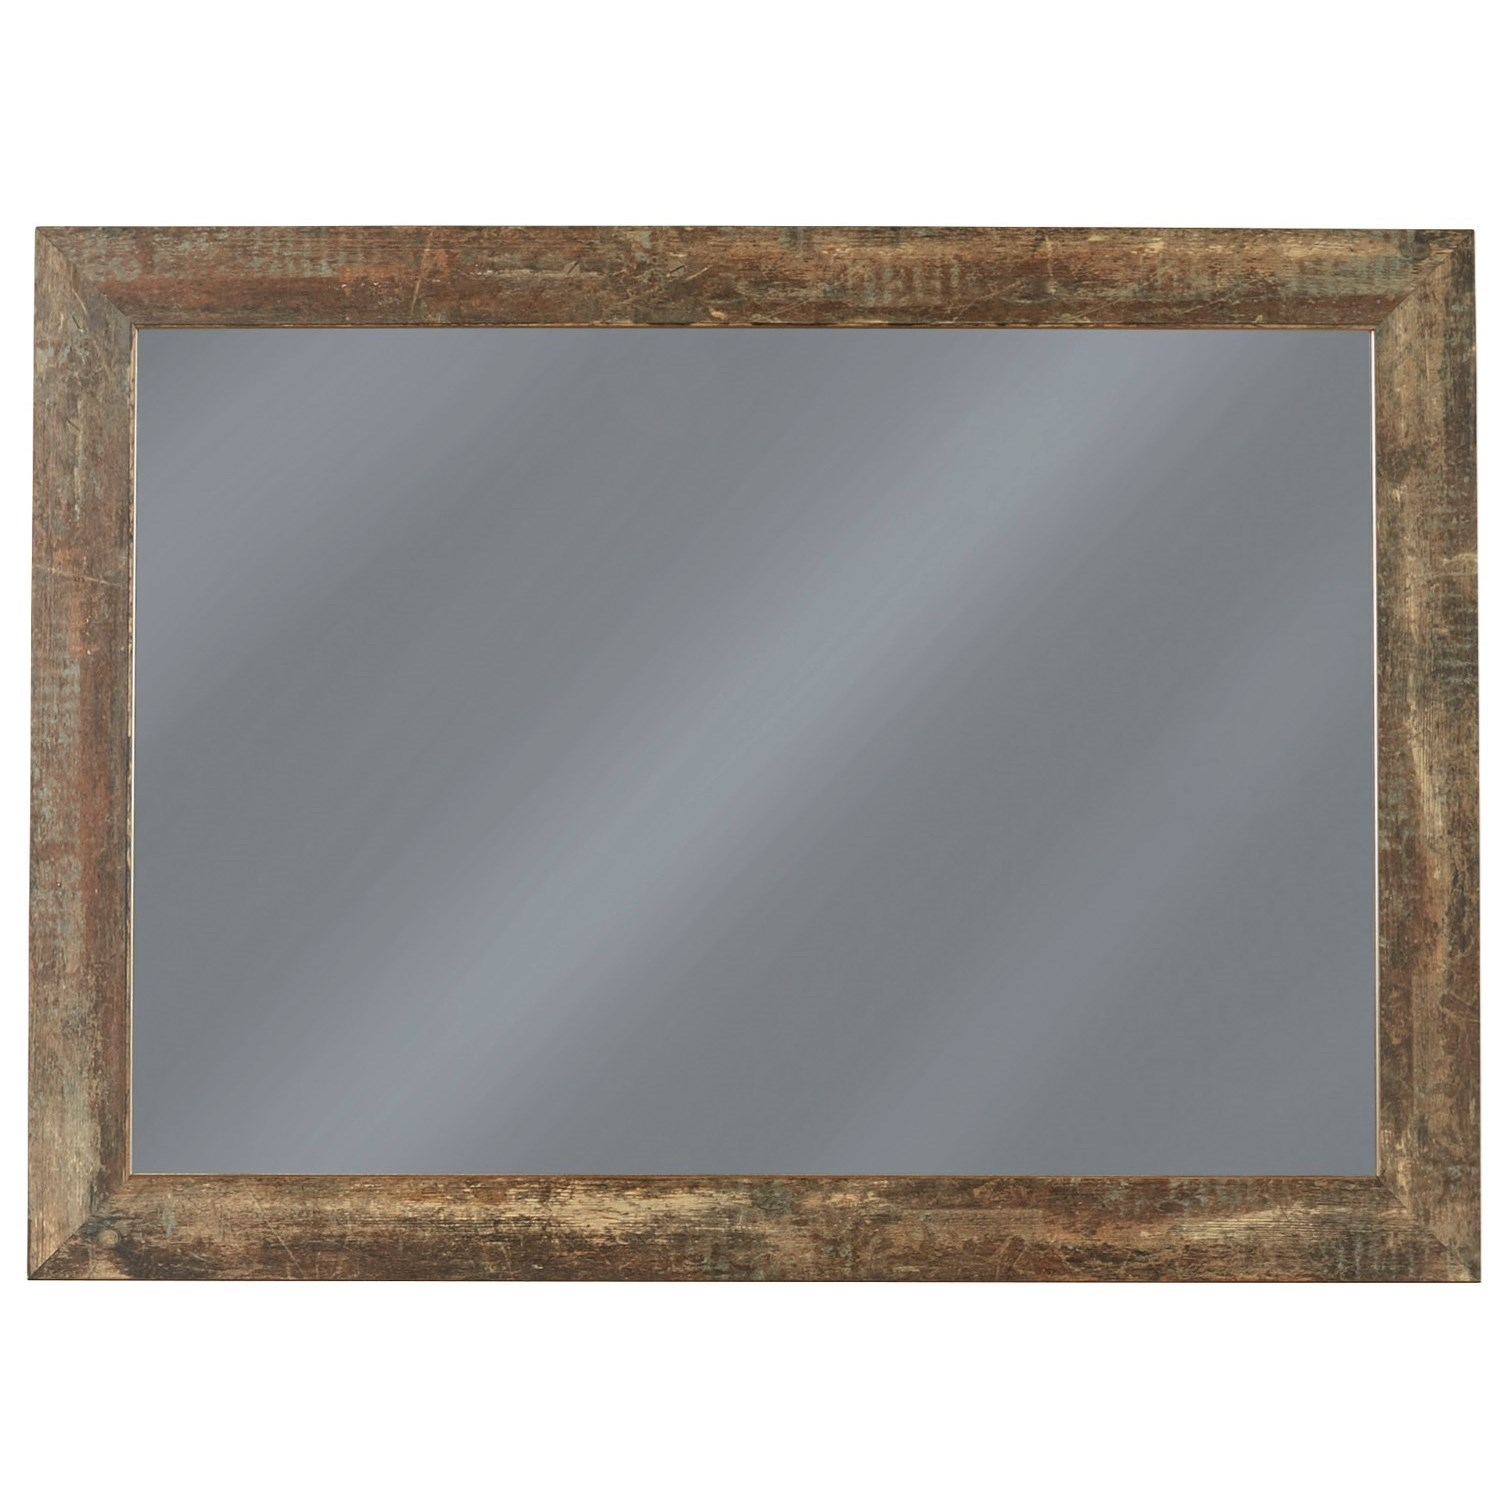 Chadbrook Bedroom Mirror by Benchcraft at Fisher Home Furnishings